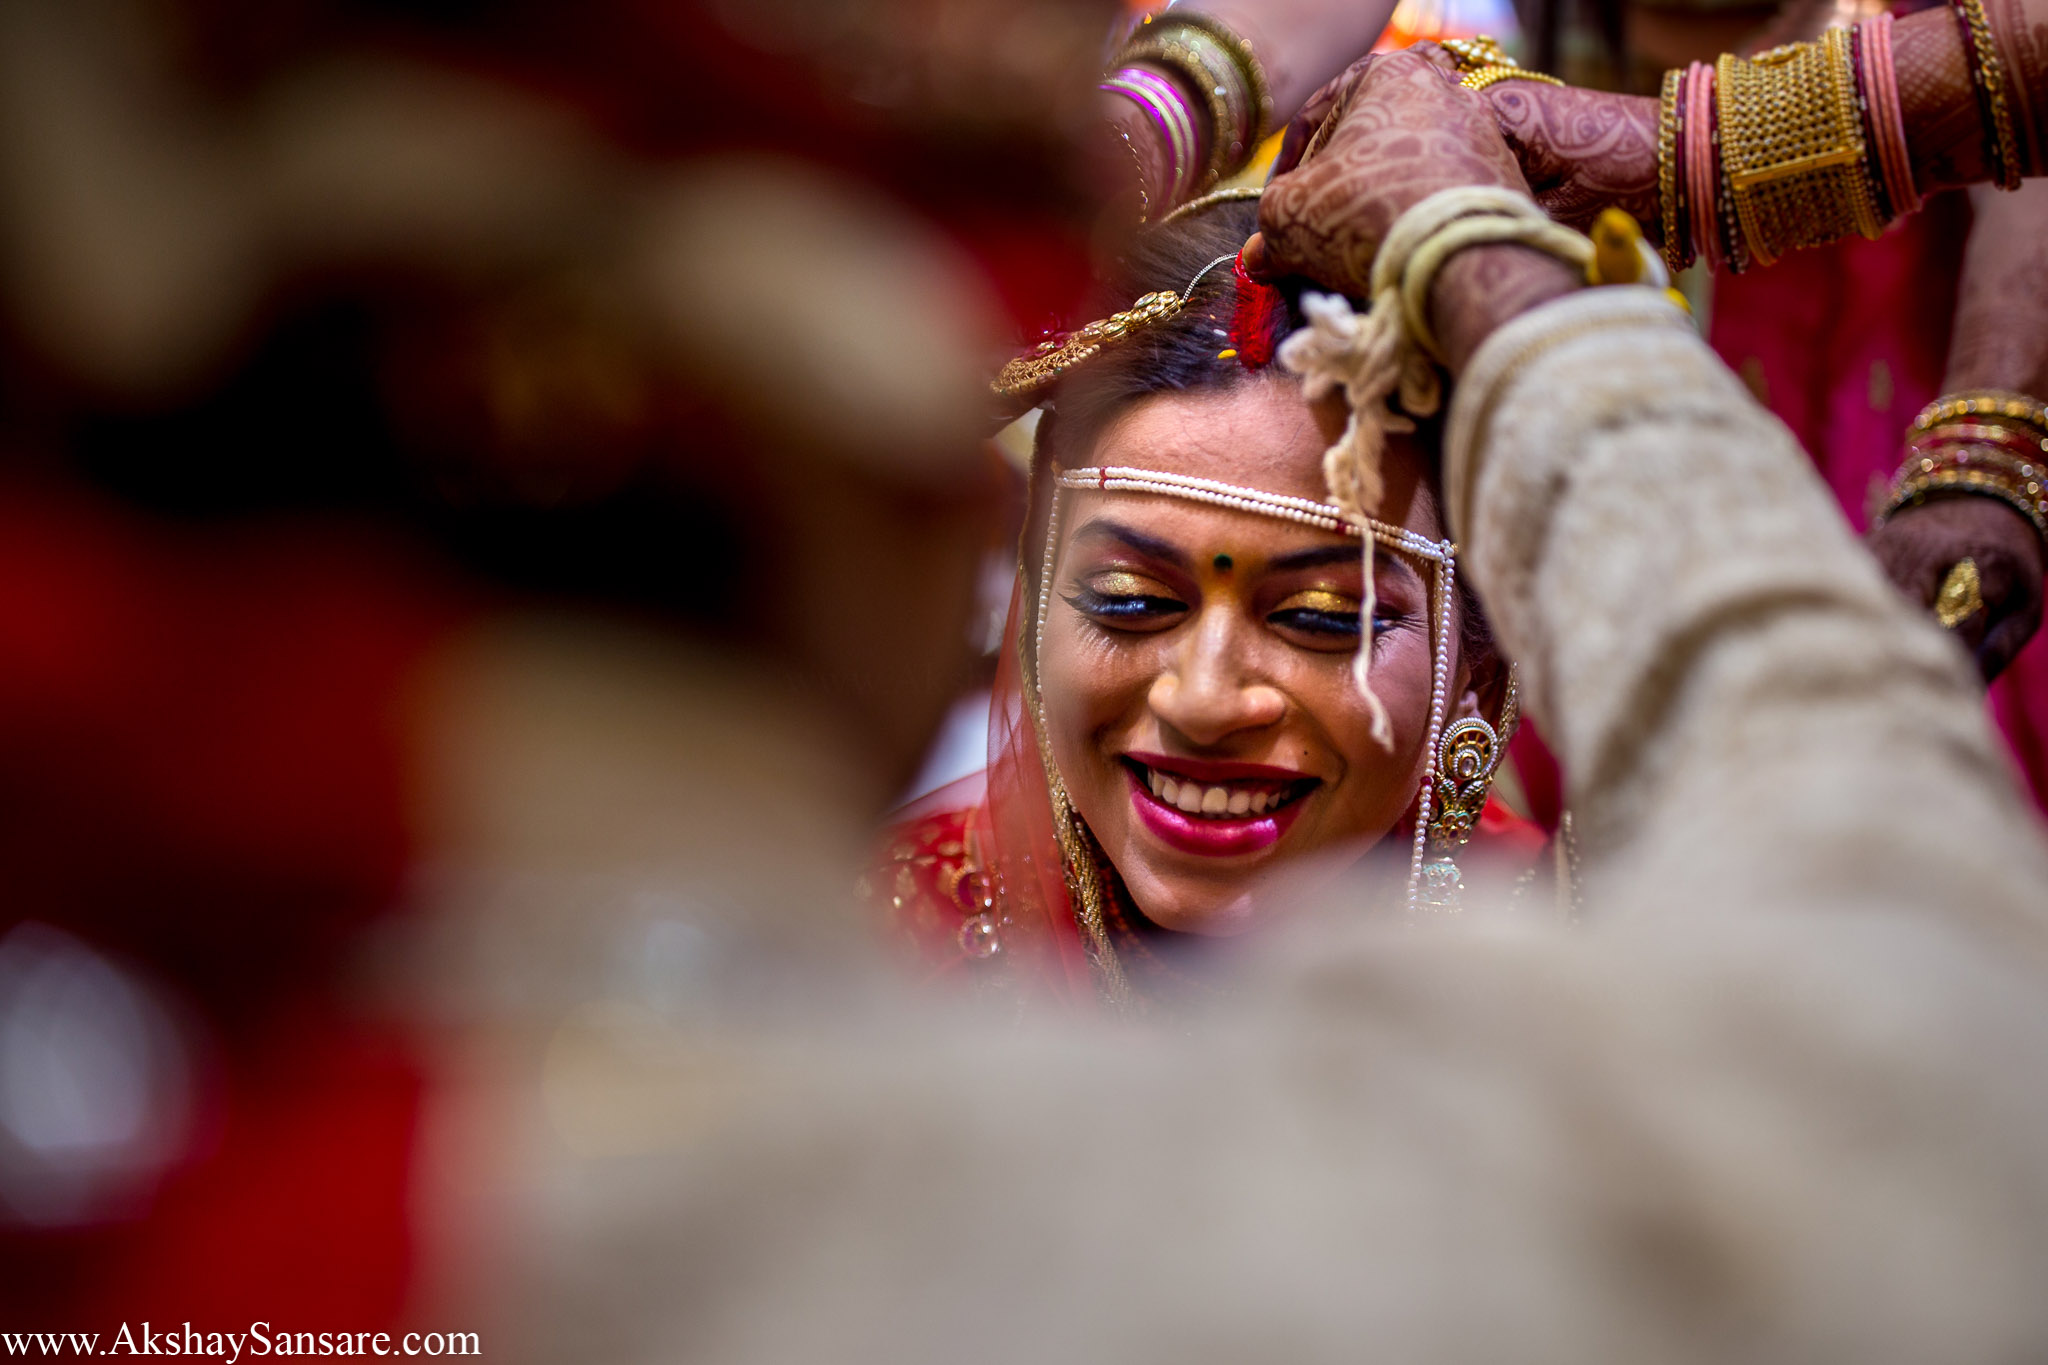 Ajay & Devika Akshay Sansare Photography Best Candid wedding photographer in mumbai india23.jpg